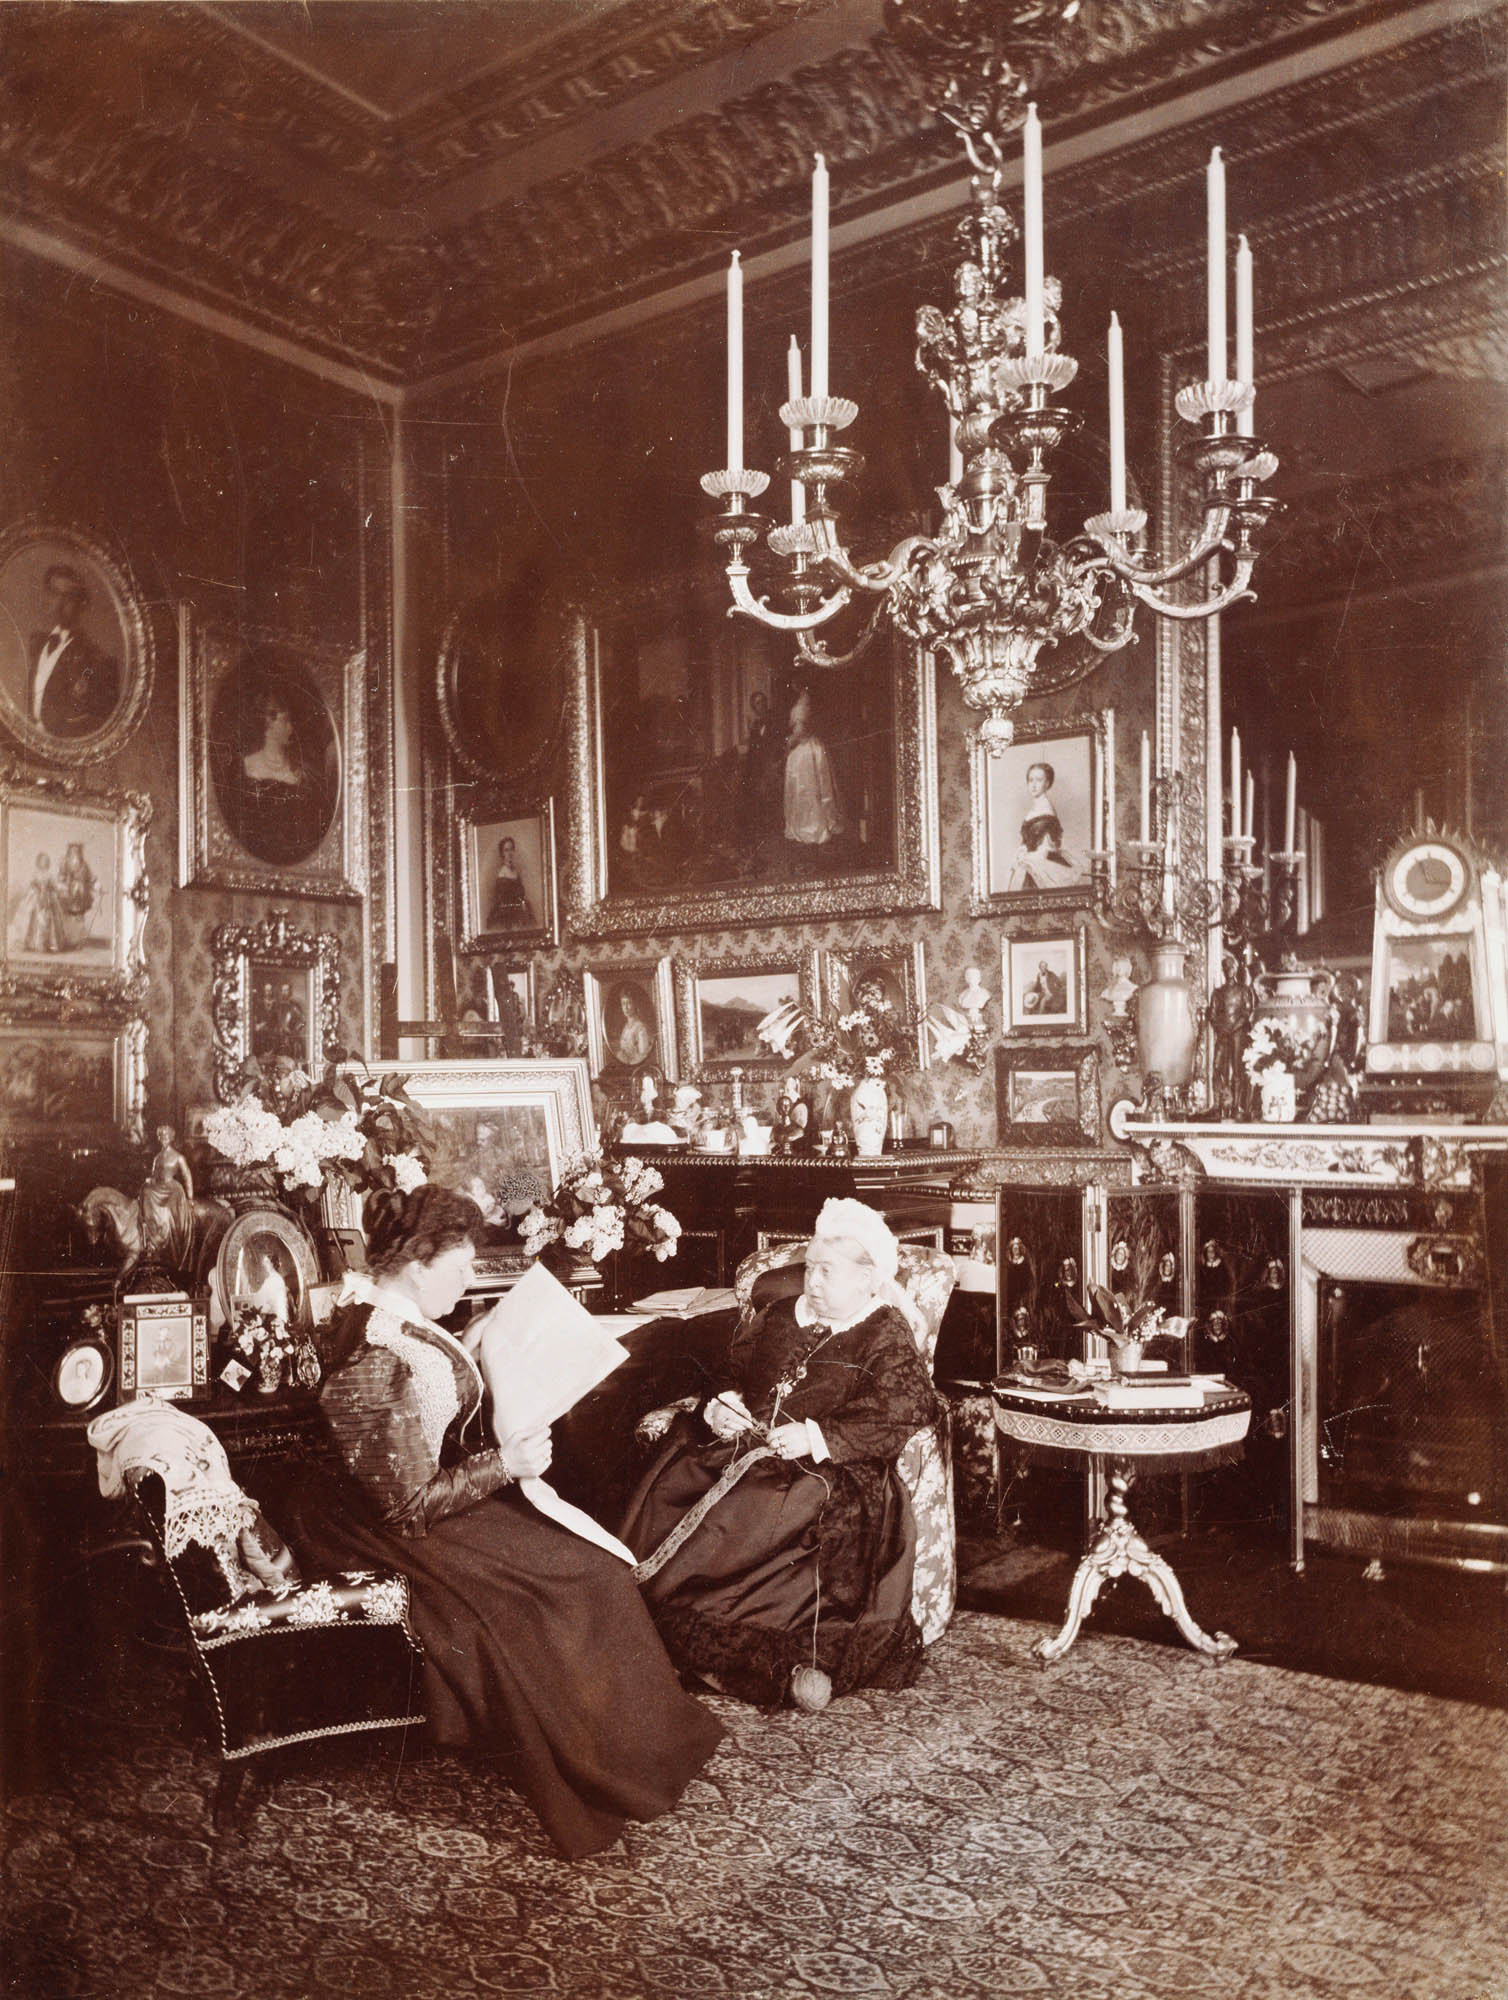 A black and white photograph of an elderly Victoria sat alongside a younger woman (Beatrice) reading a newspaper. The room is ornately decorated, with a number of photographs, paintings and a large chandelier hanging from the ceiling.